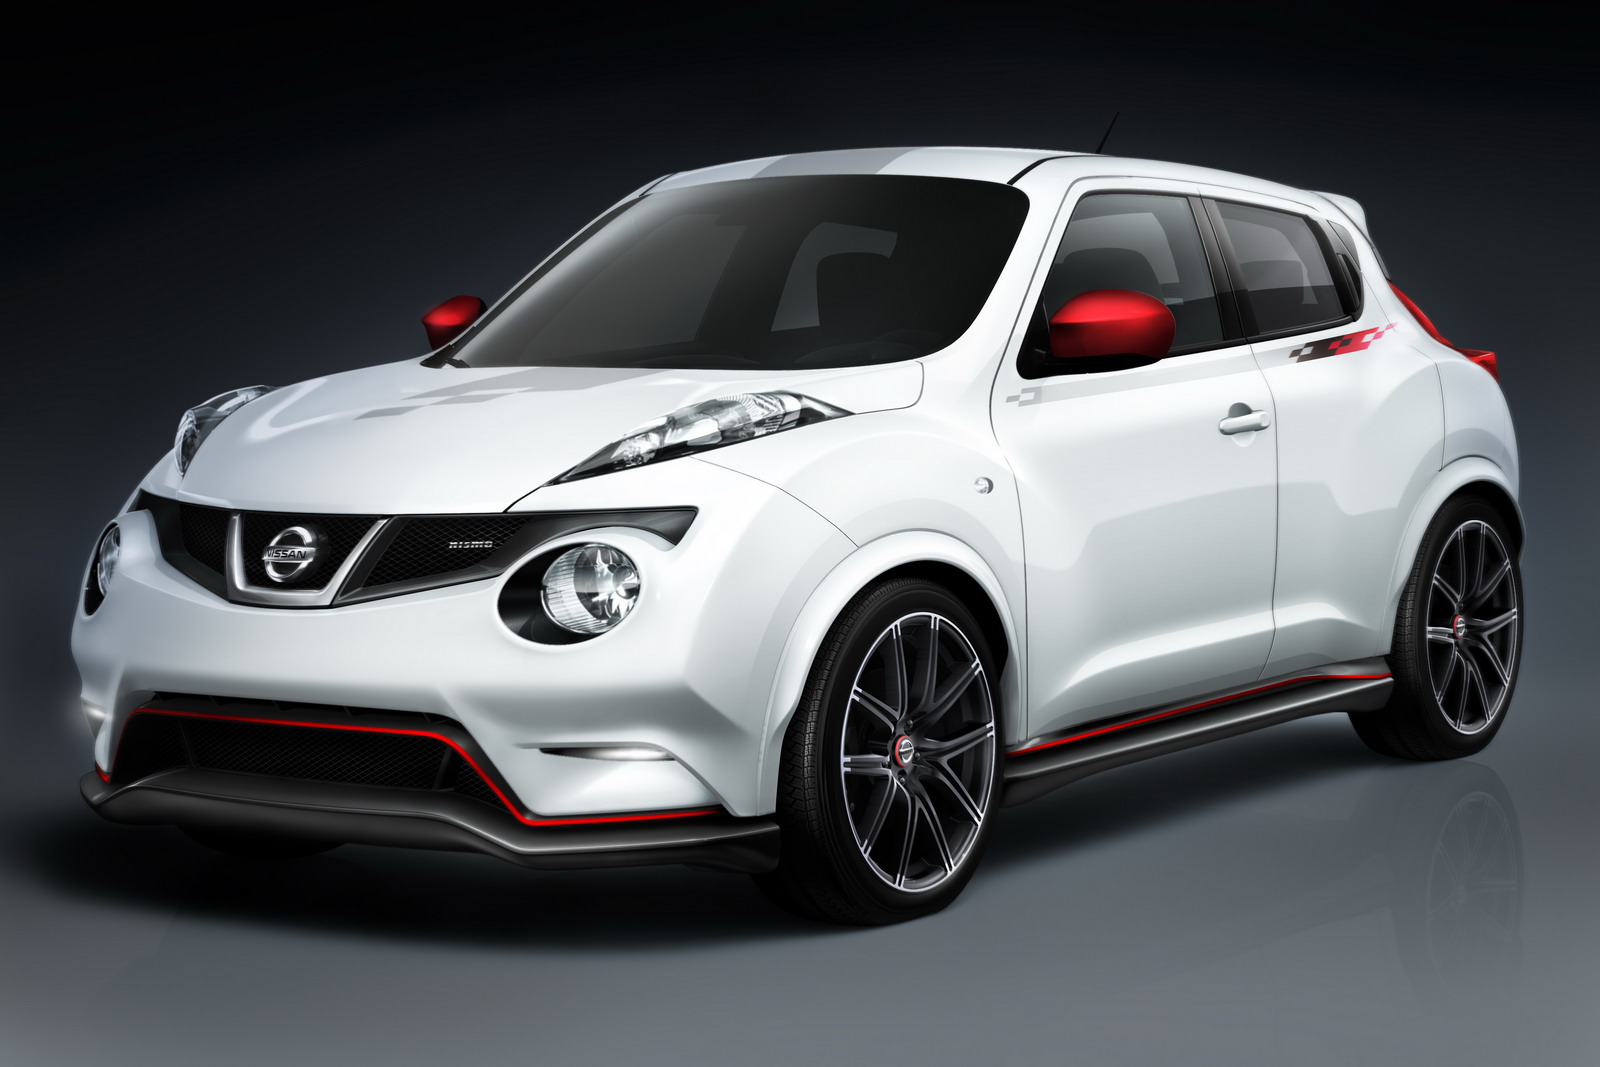 new 2012 nissan juke nismo concept launches in the tokyo motor show. Black Bedroom Furniture Sets. Home Design Ideas